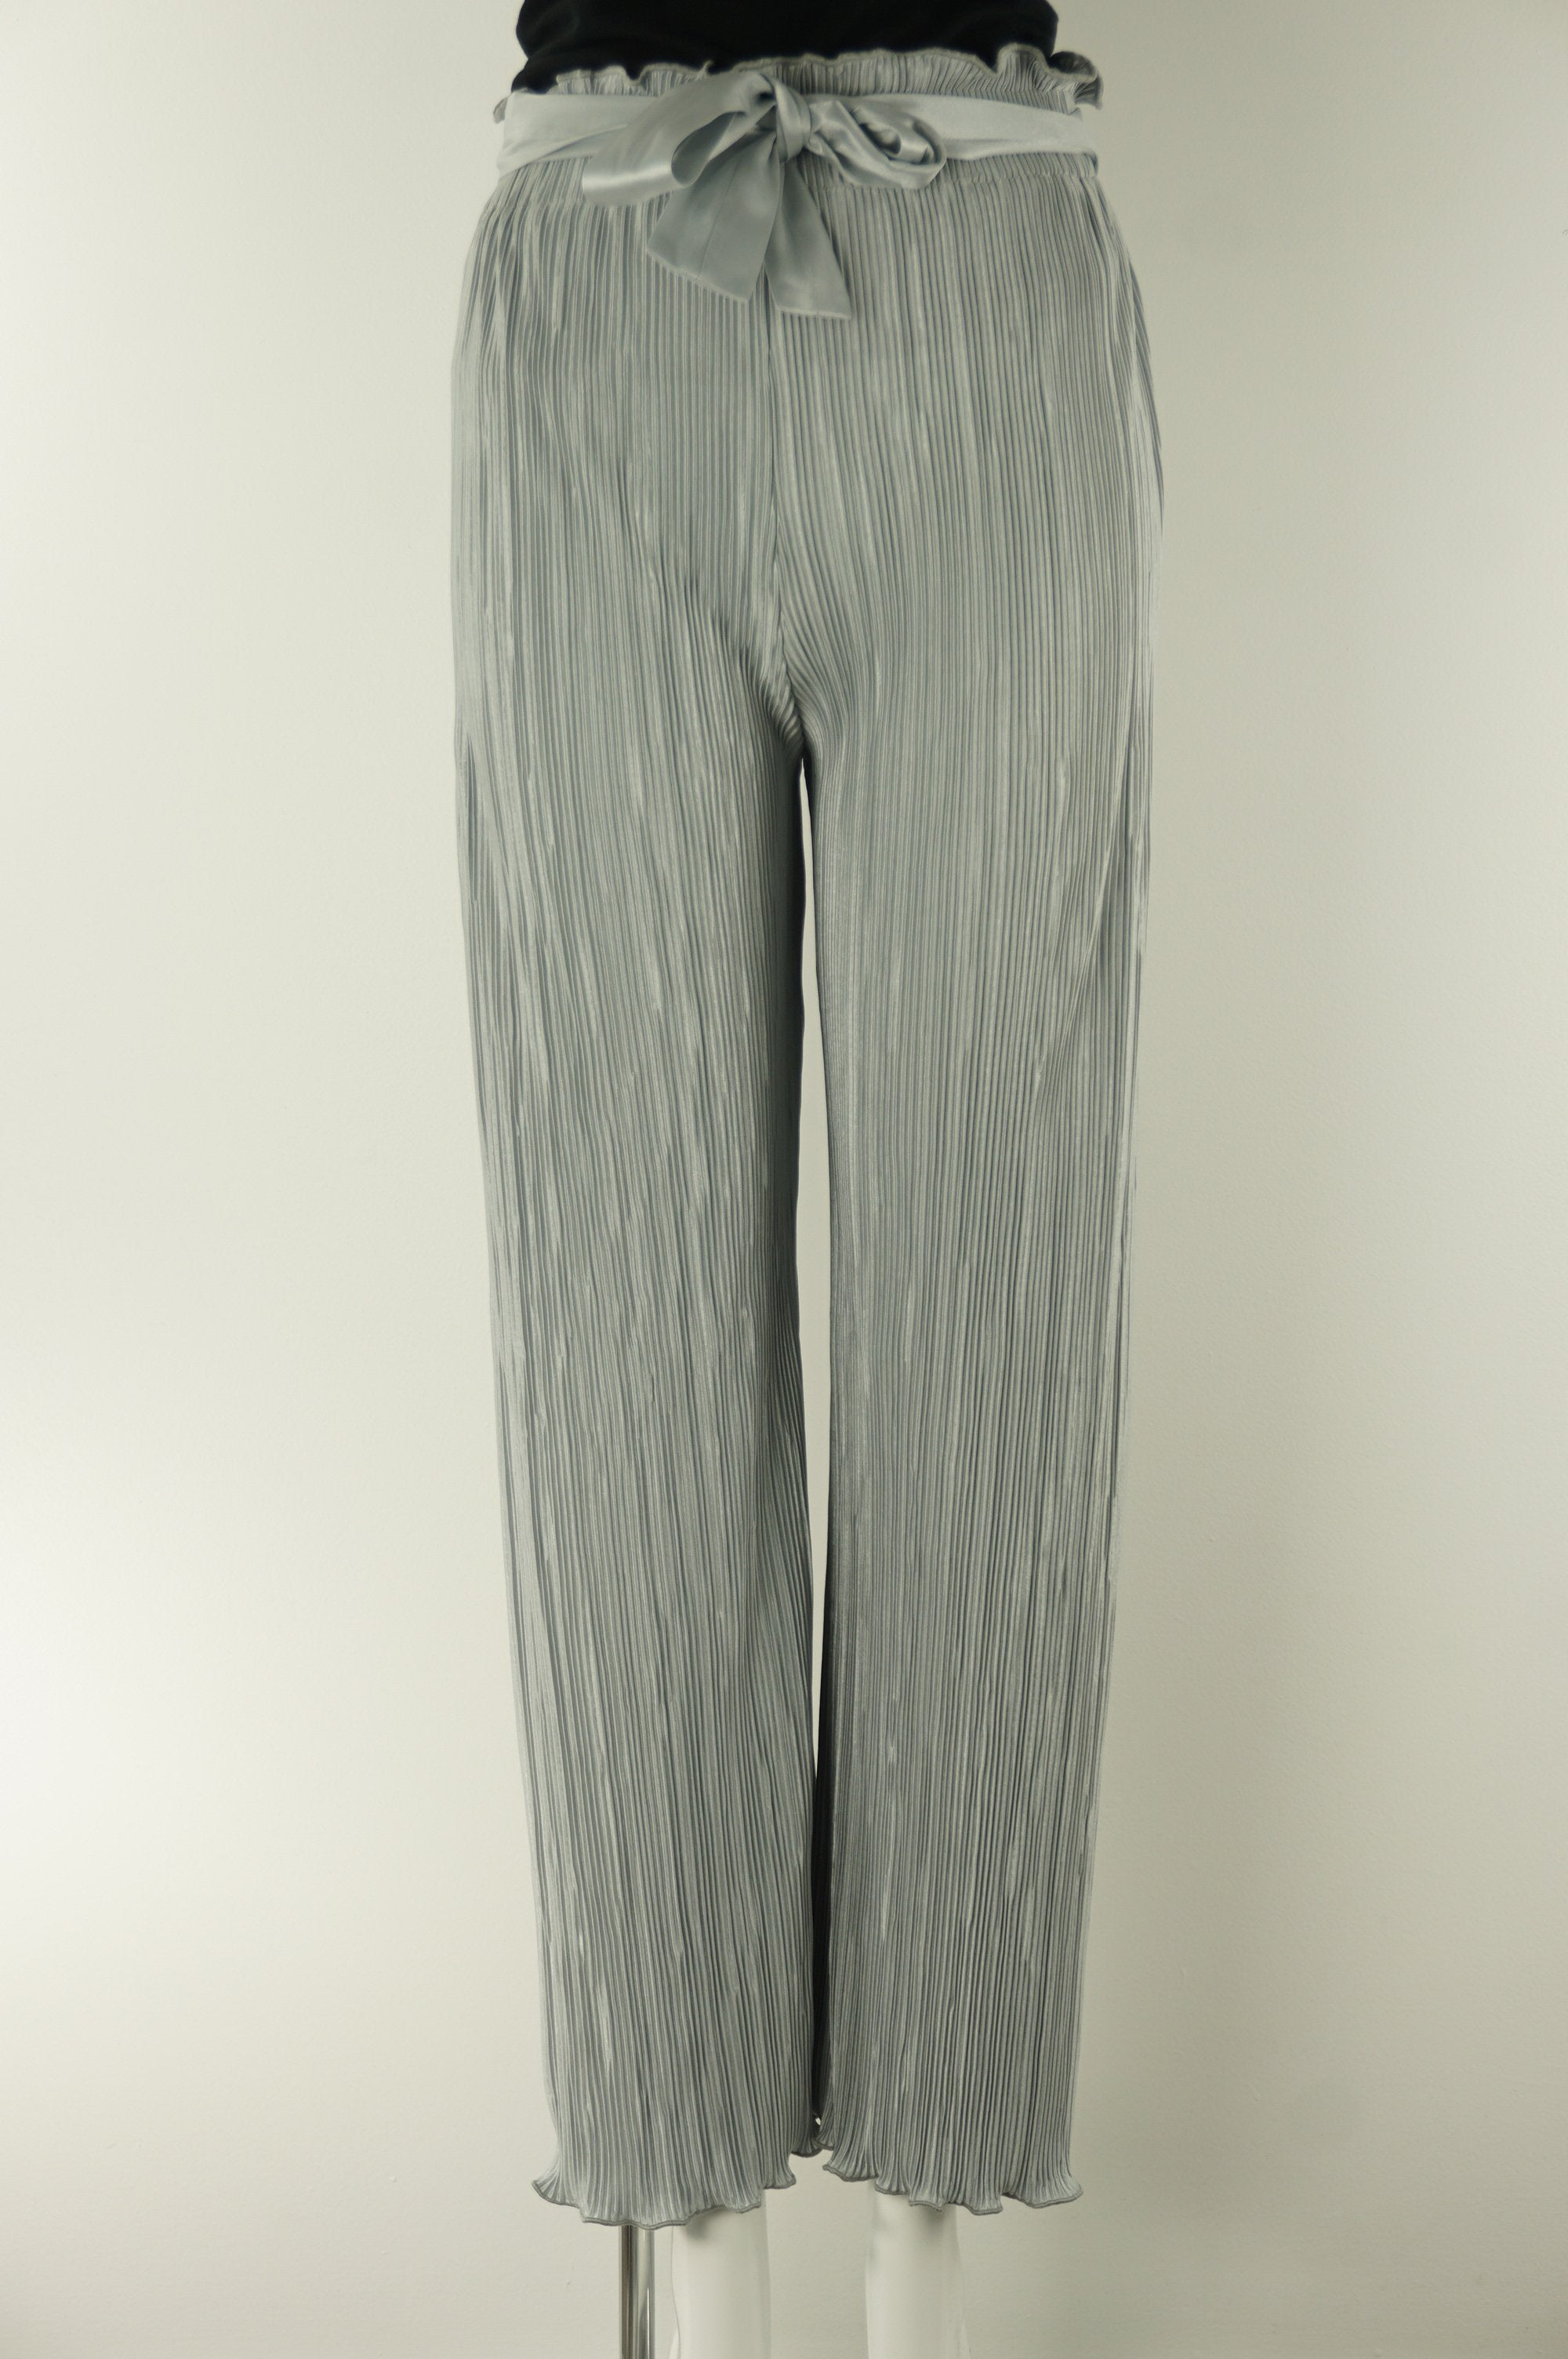 Couturist Pleated Wide Leg Pants with Curl Edge, Probably different from other pants in your closet, this super stretchy pleated pants lets you move around comfortably in style! Elastic waistband with adjustable waist strap., Blue, Grey, Sythetic Stretchy Fabric, women's Pants, women's Blue, Grey Pants, Couturist women's Pants, women's pleated stretchy pants, women's soft silky palazzo pants